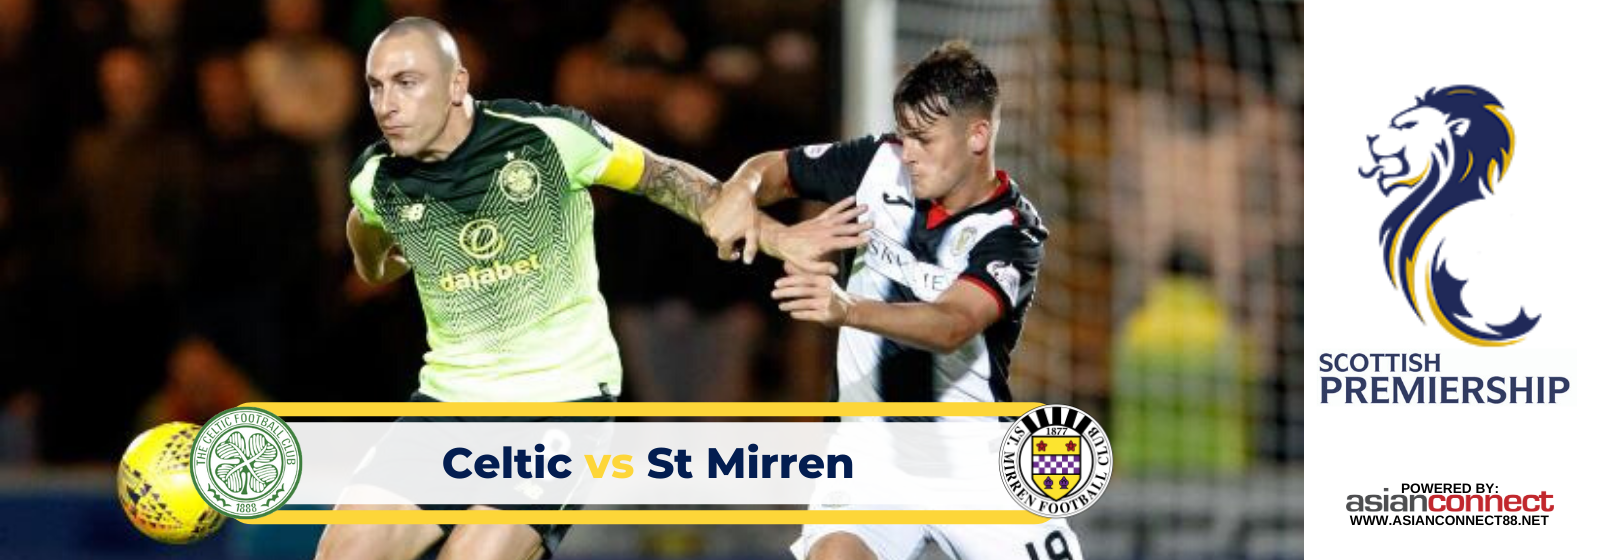 Asianconnect: Celtic vs St Mirren Odds for March 07, 2020